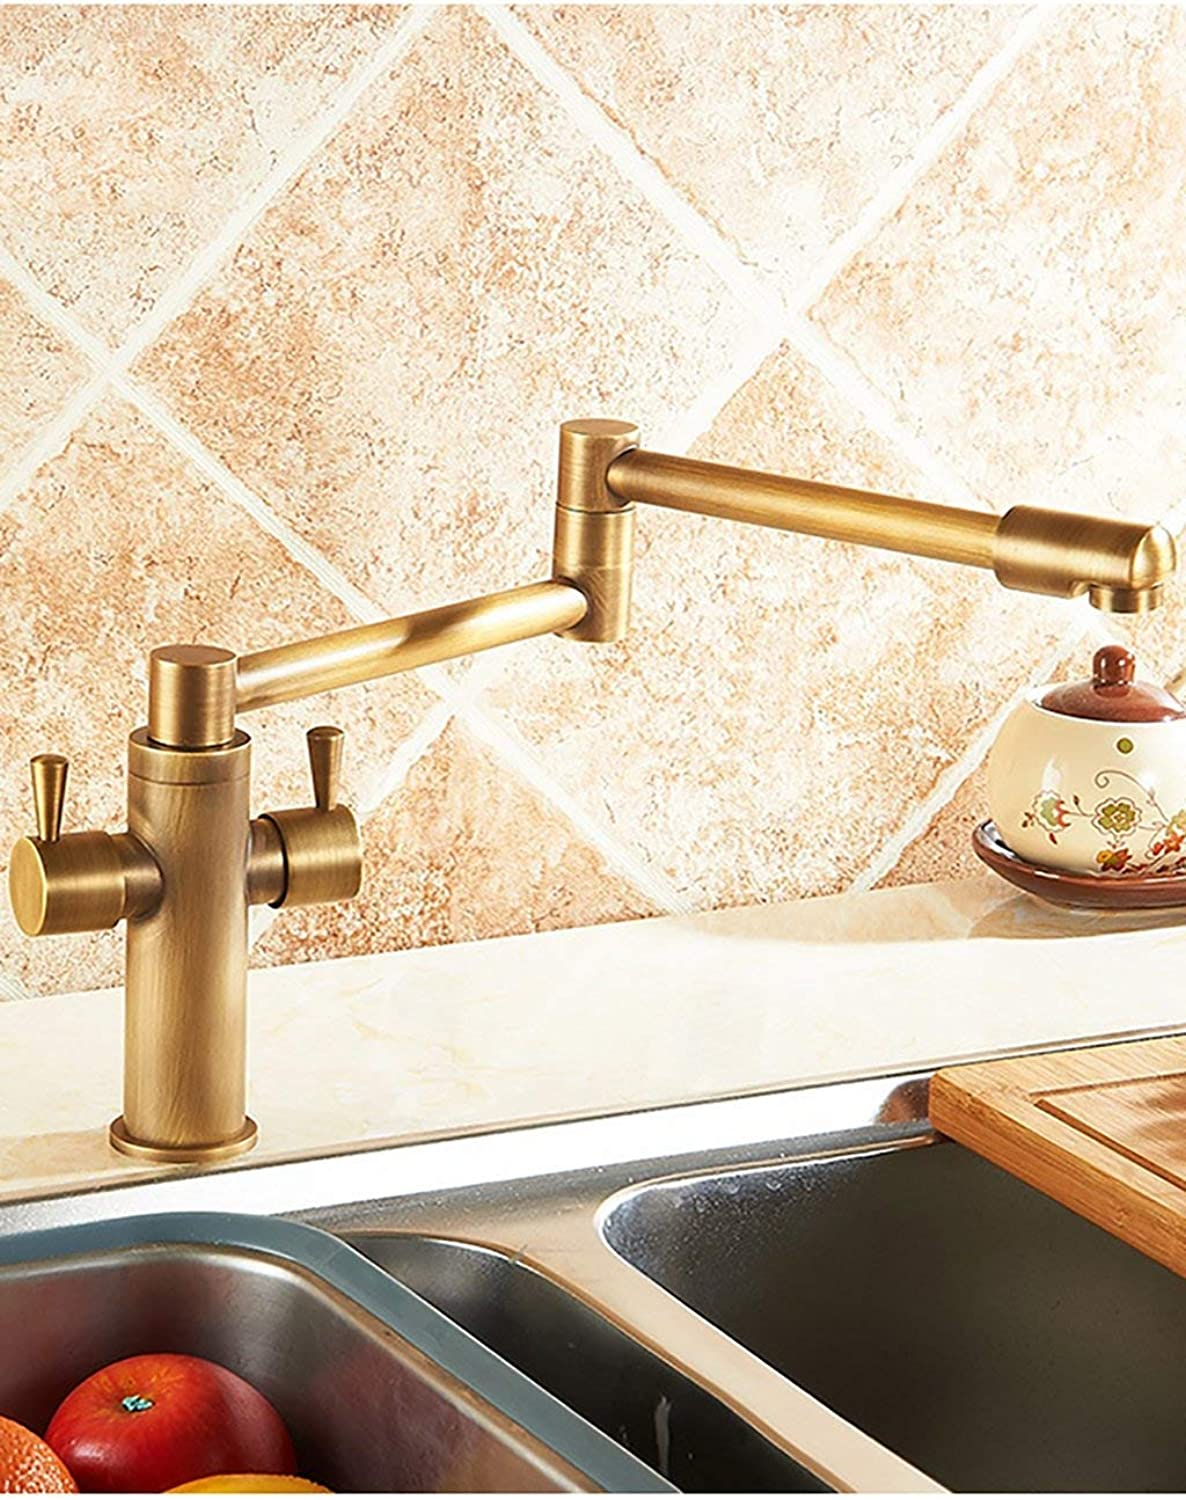 DYR Faucet European Style Retro Household Kitchen Faucet Copper Hei? And Cold Foldable Can Be Turned Single Head Mixing Bowl